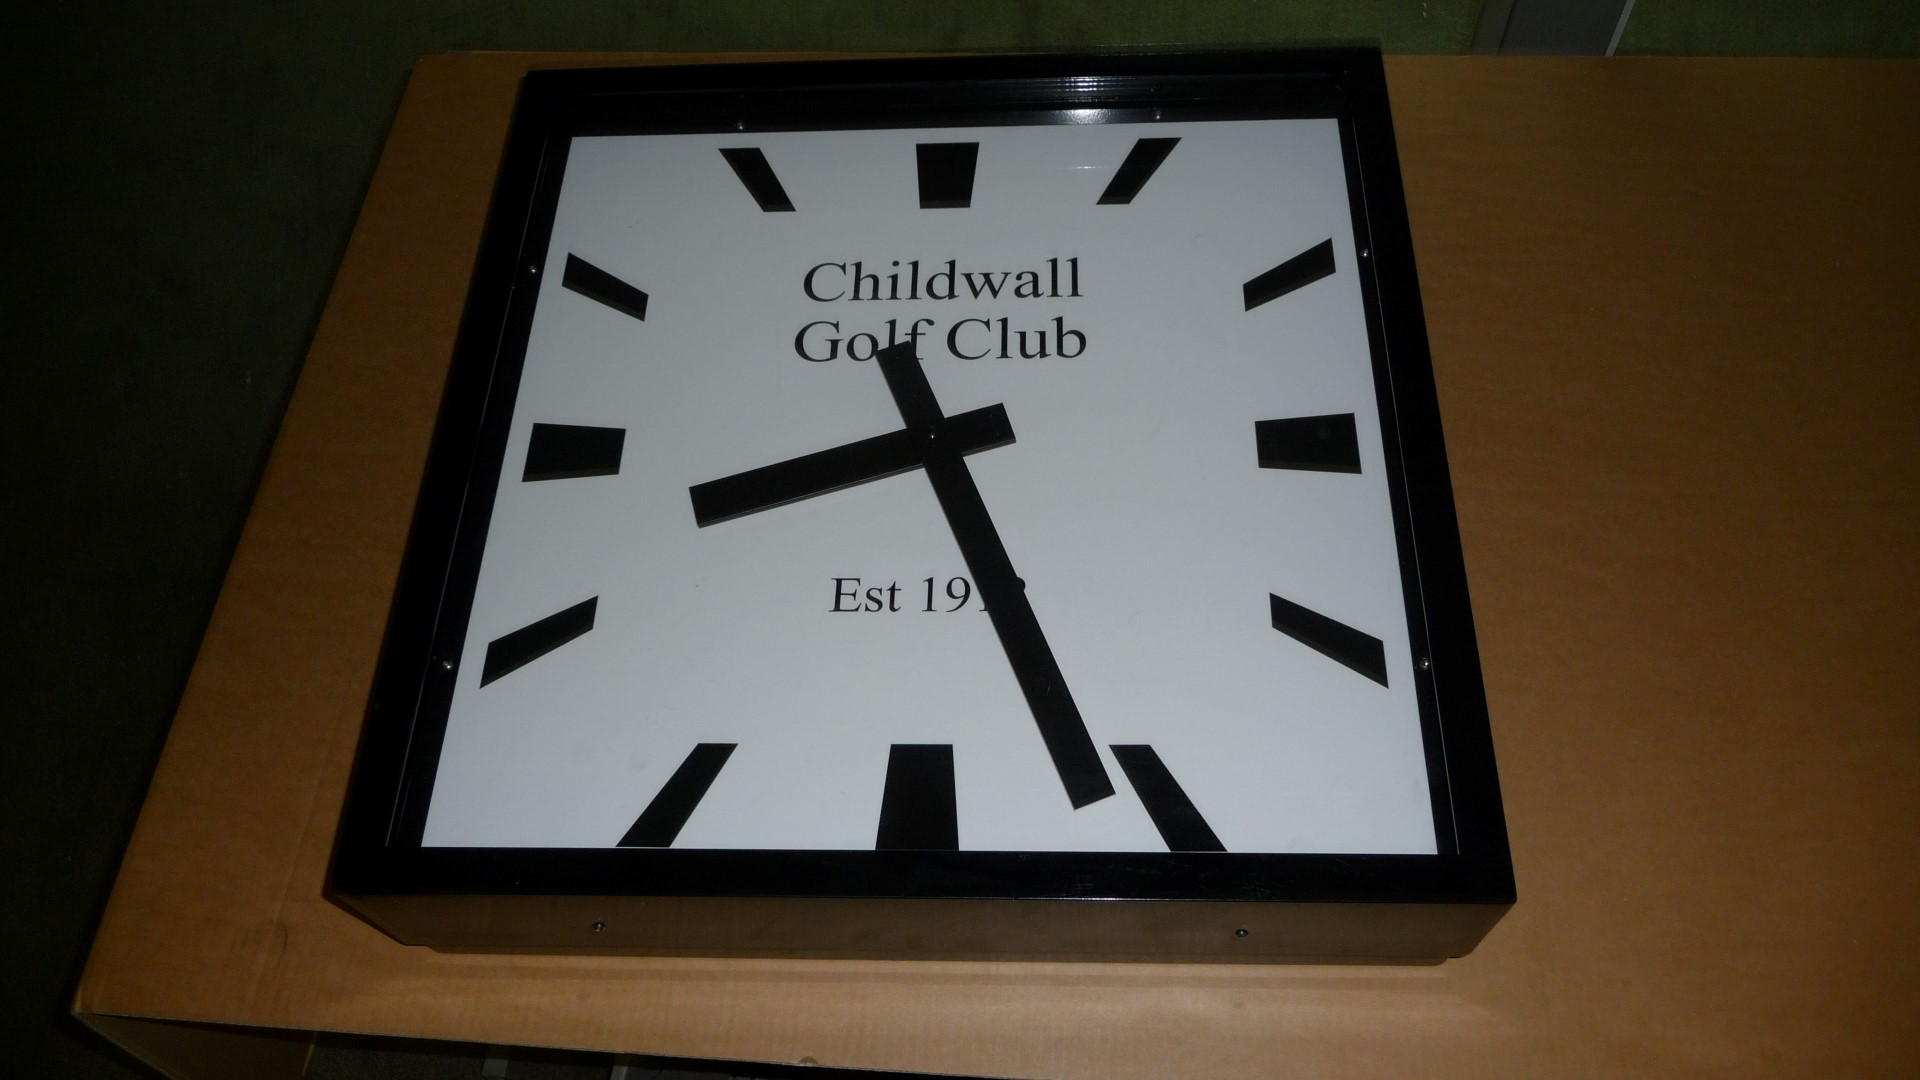 Childwall Golf Club Clock